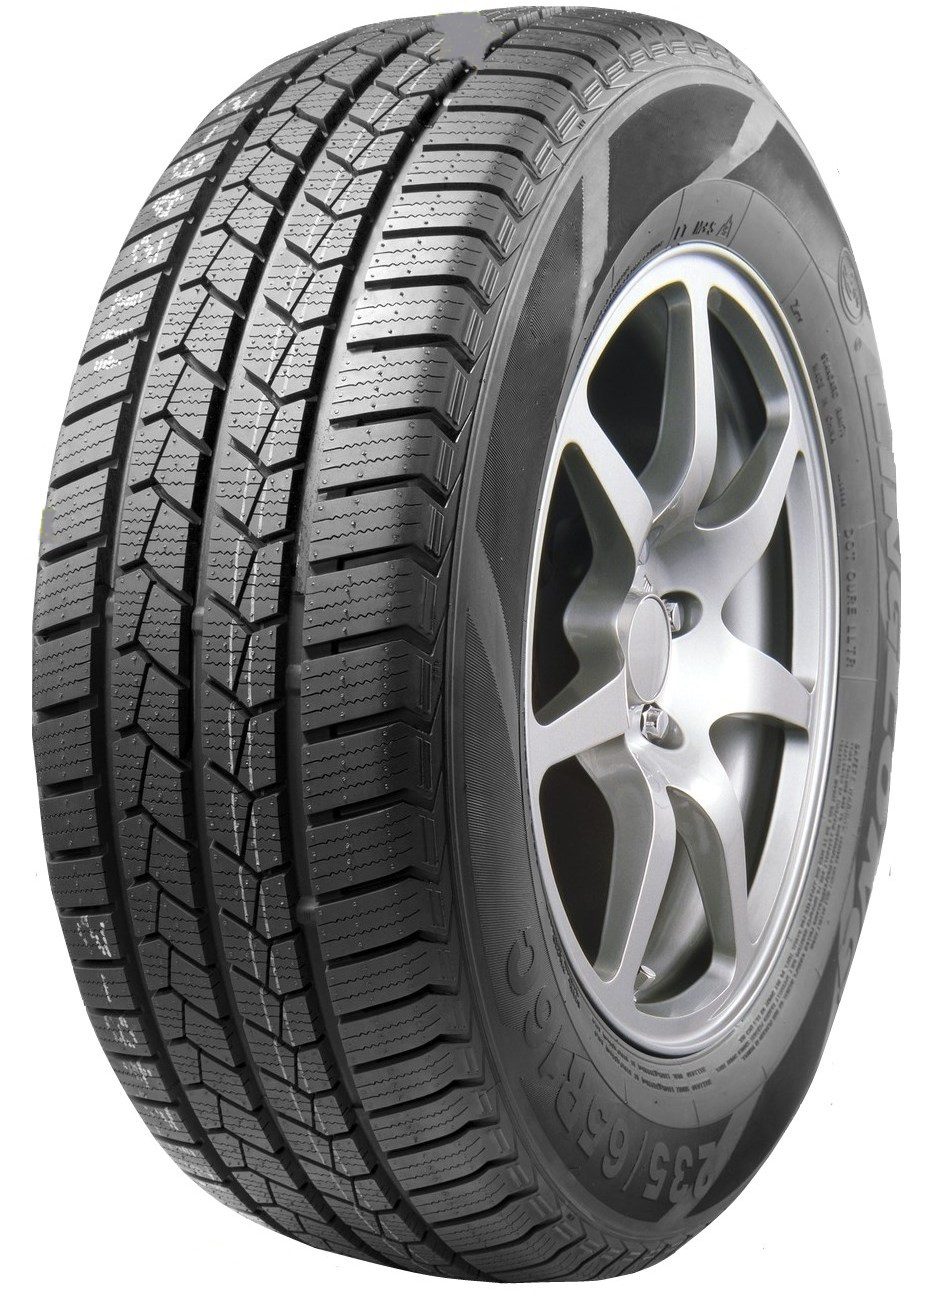 Llantas 215/75 R16  GREEN-MAX VAN LINGLONG Origen china